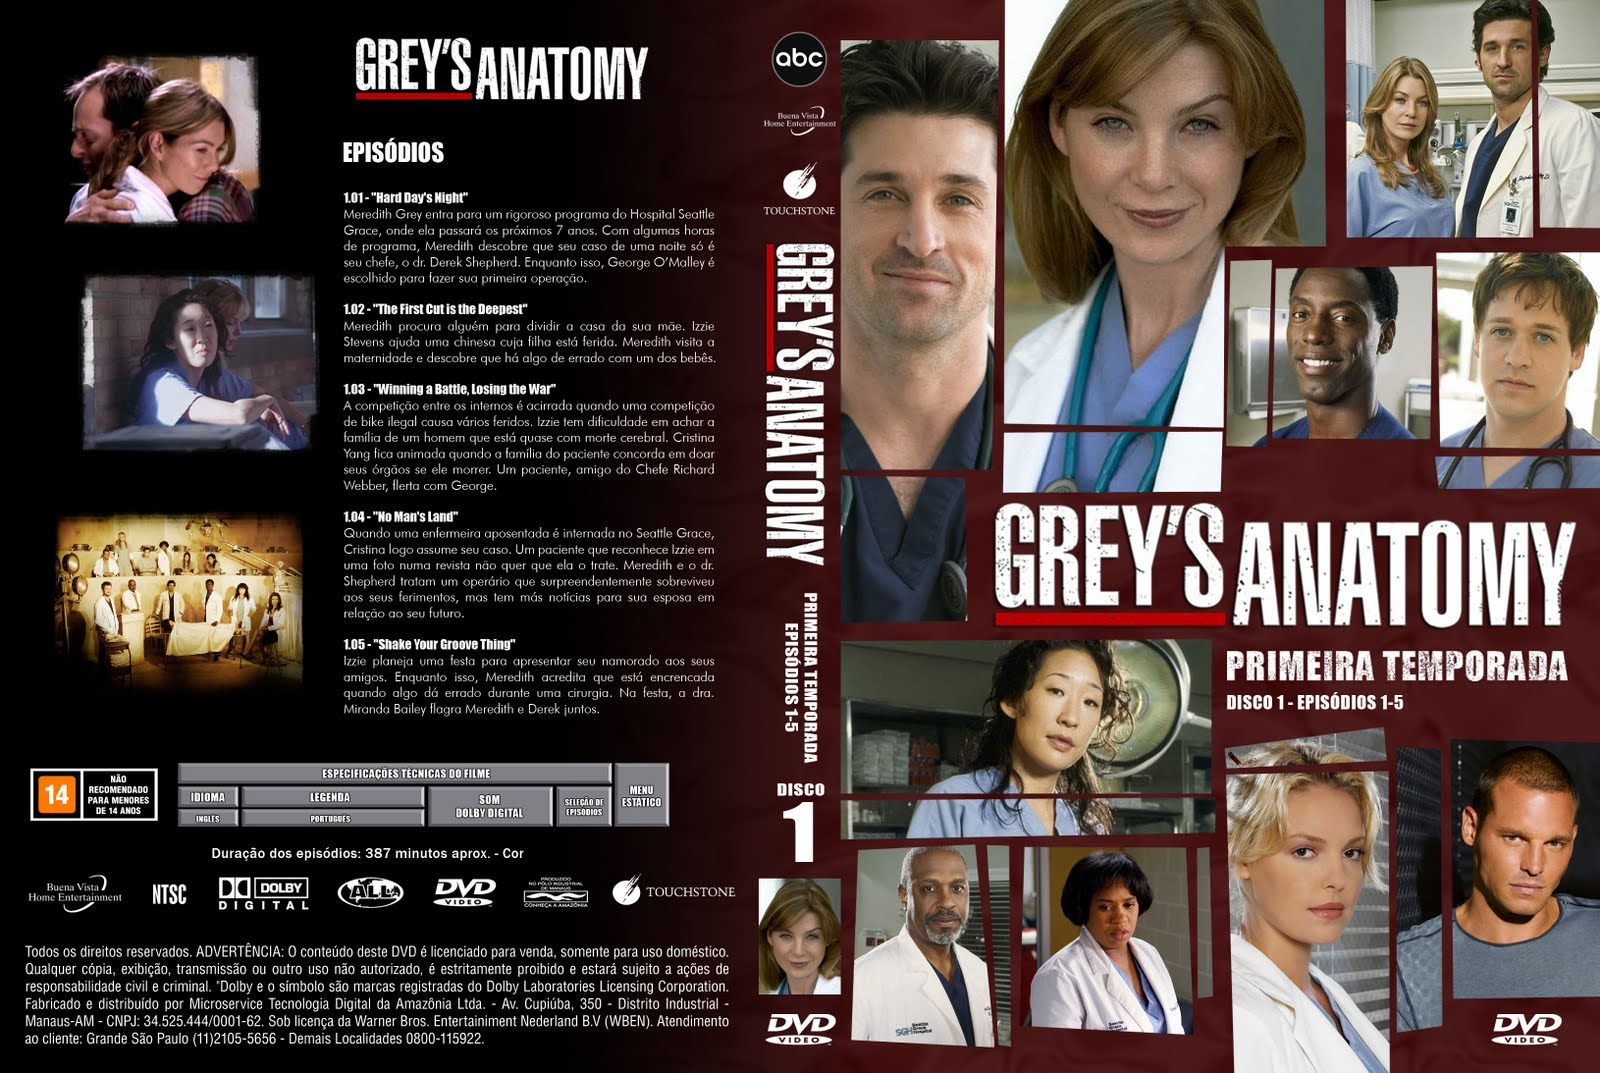 Downloads Diversos Greys Anatomy 1 Temporada Completa 720p